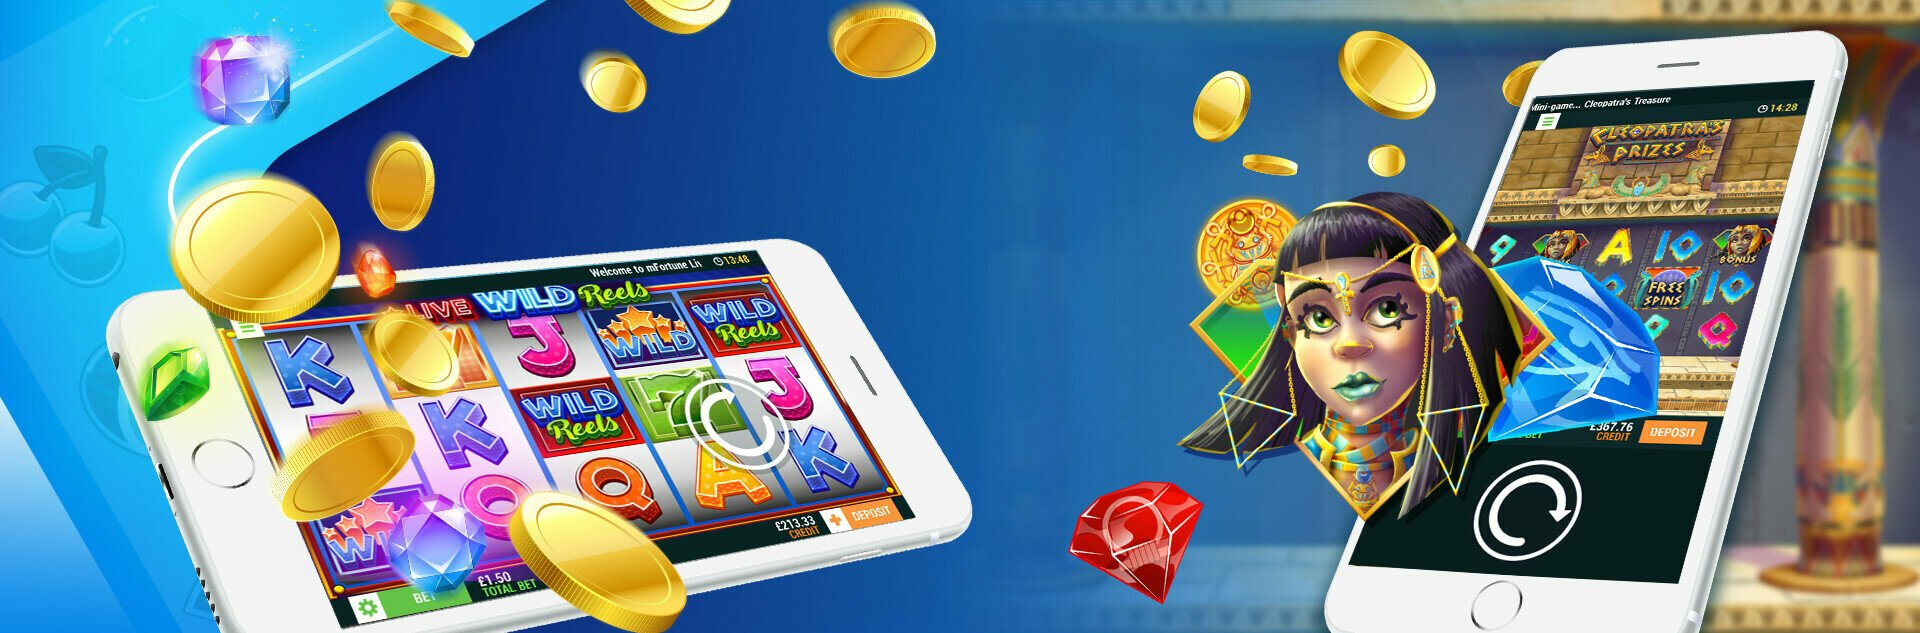 Casino 2020 casino review UK